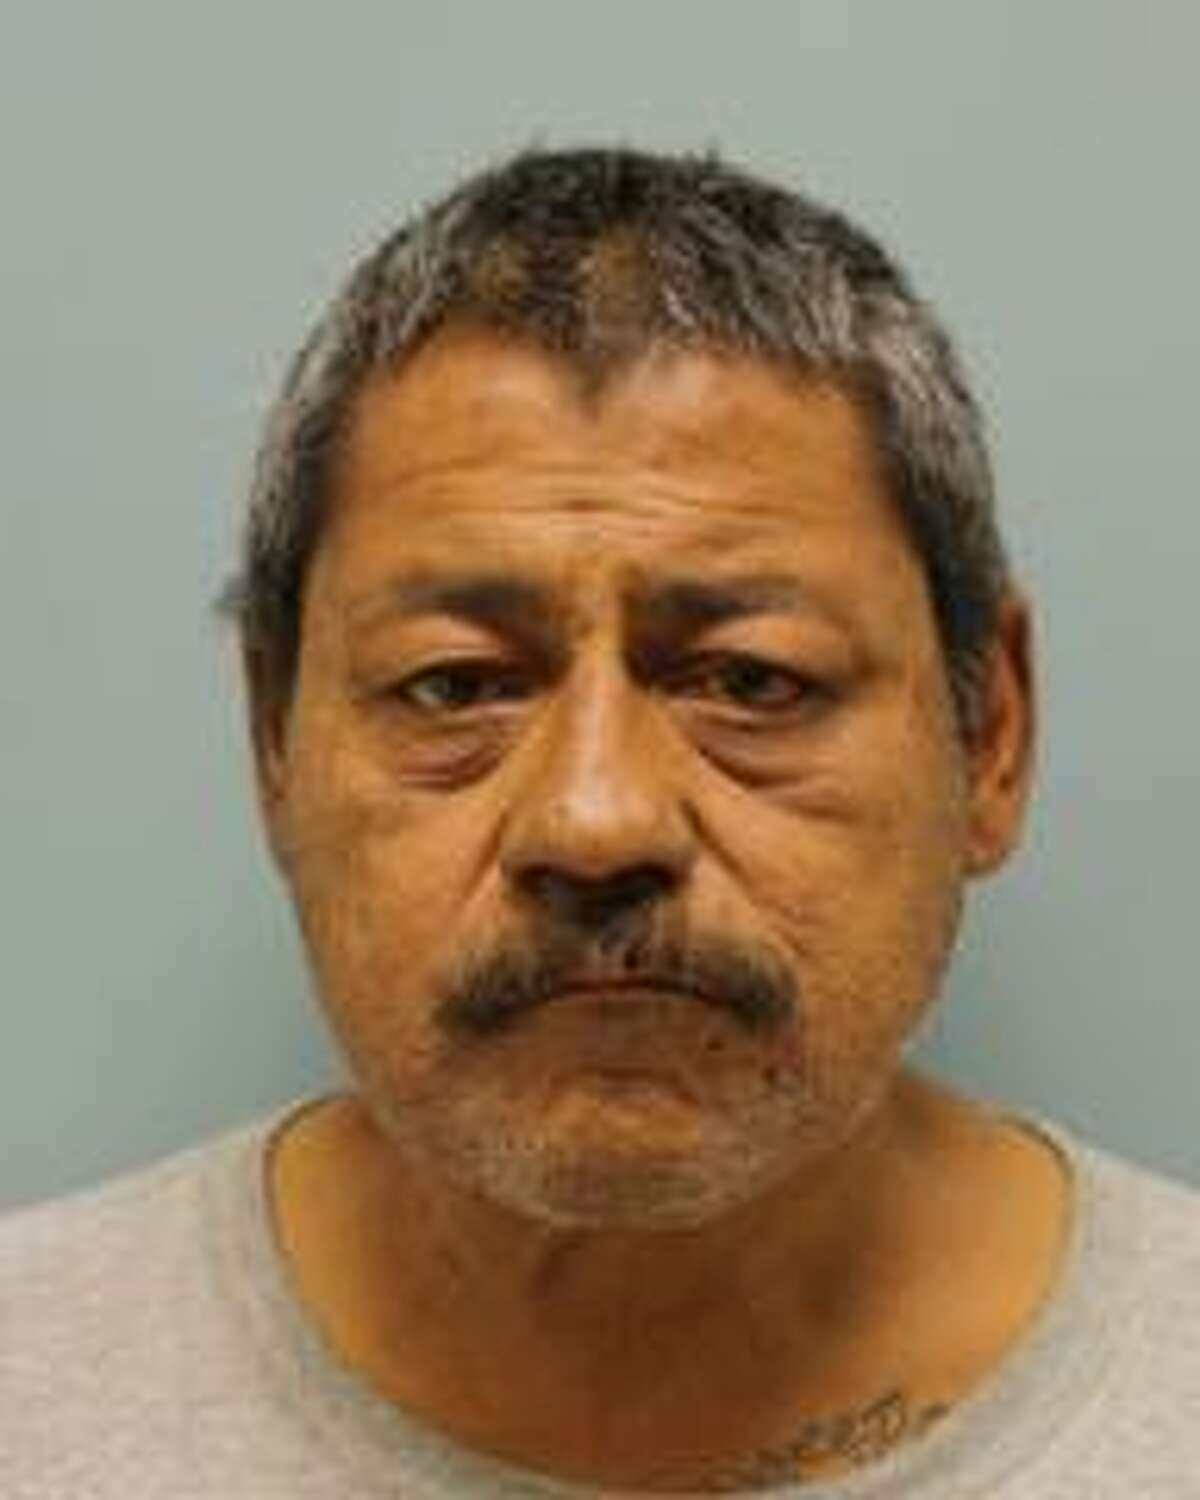 Victor Chavarria, 50, is accused of murdering a man in a fatal stabbing on Christmas Day. Anyone with information about the death of Edwin Roman-Lozada is encouraged to contact Crime Stoppers of Houston at 713-222-TIPS. Click through the slideshow to see Texas homes that are sites of murders.